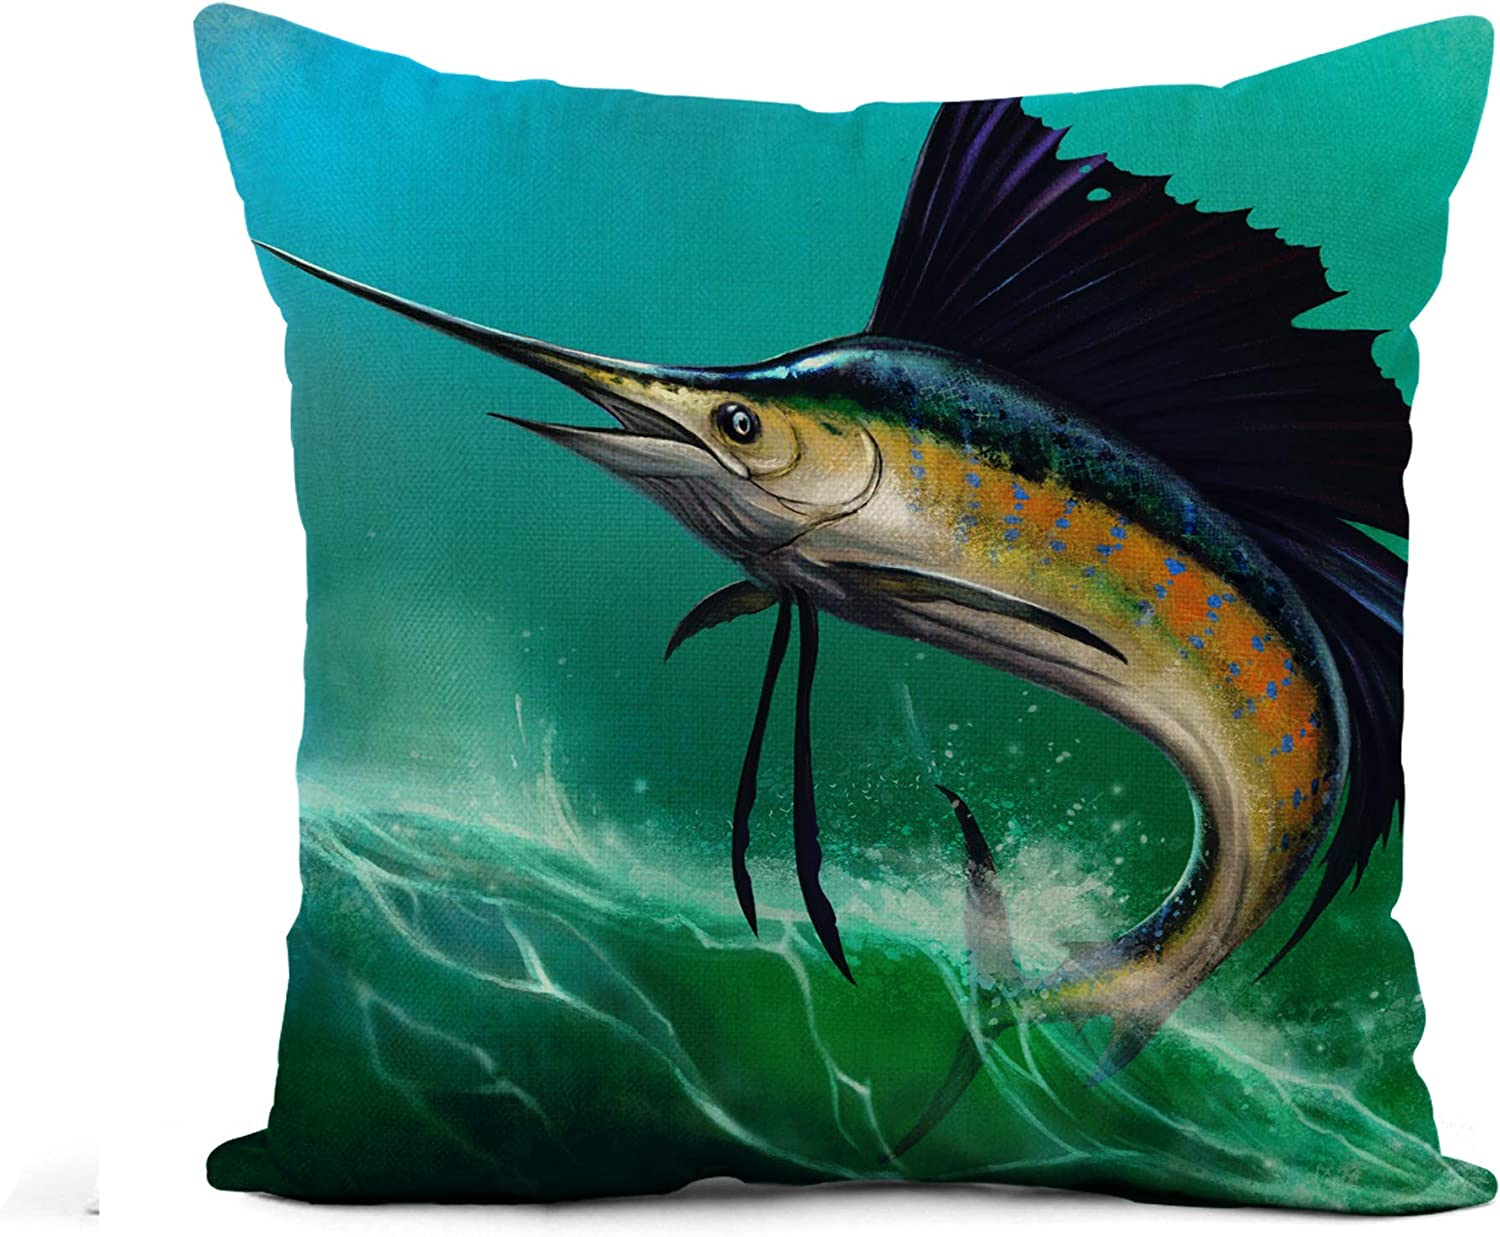 Awowee Flax Throw Pillow Cover Blue Marlin Sailfish of Waves in Jump Jumping Swordfish 20x20 Inches Pillowcase Home Decor Square Cotton Linen Pillow Case Cushion Cover